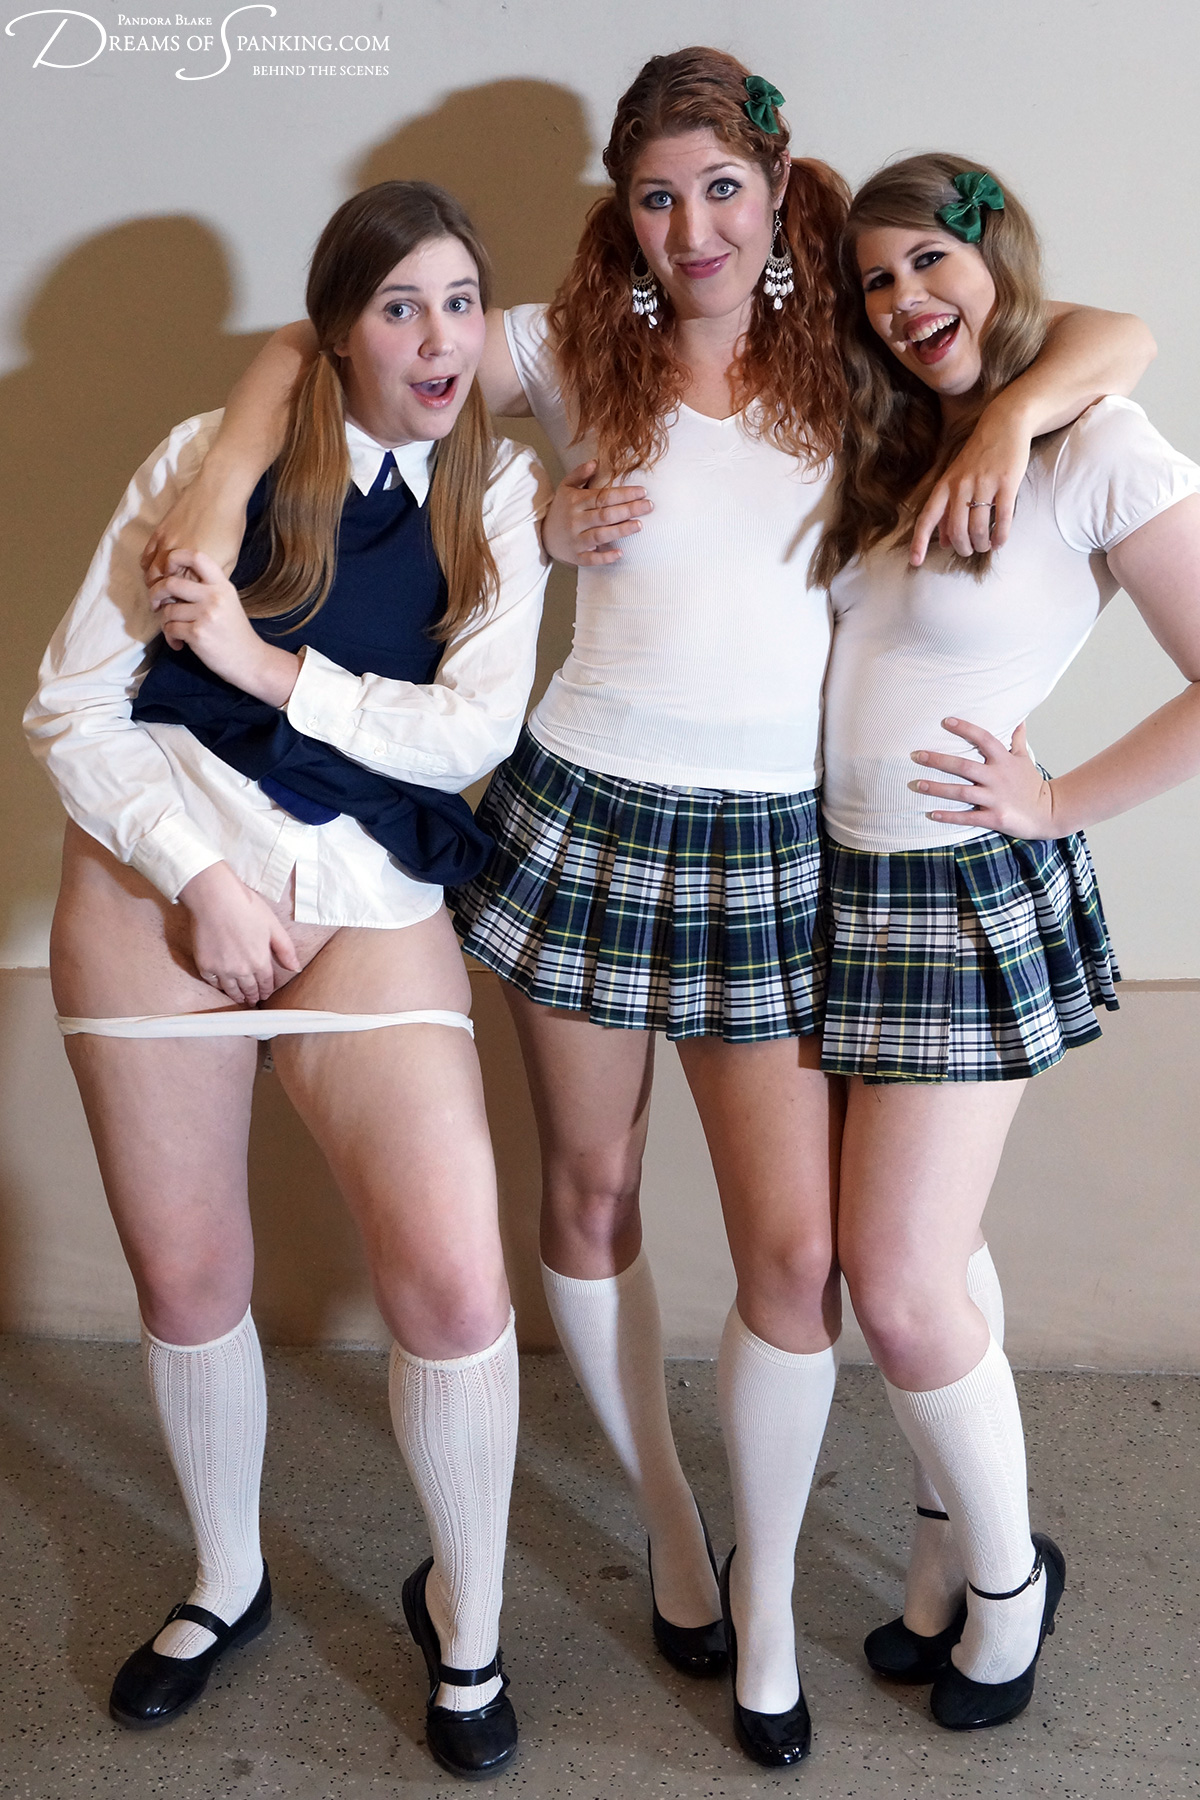 Alex Reynolds, Maddy Marks and Christy Cutie as schoolgirls at Dreams of Spanking